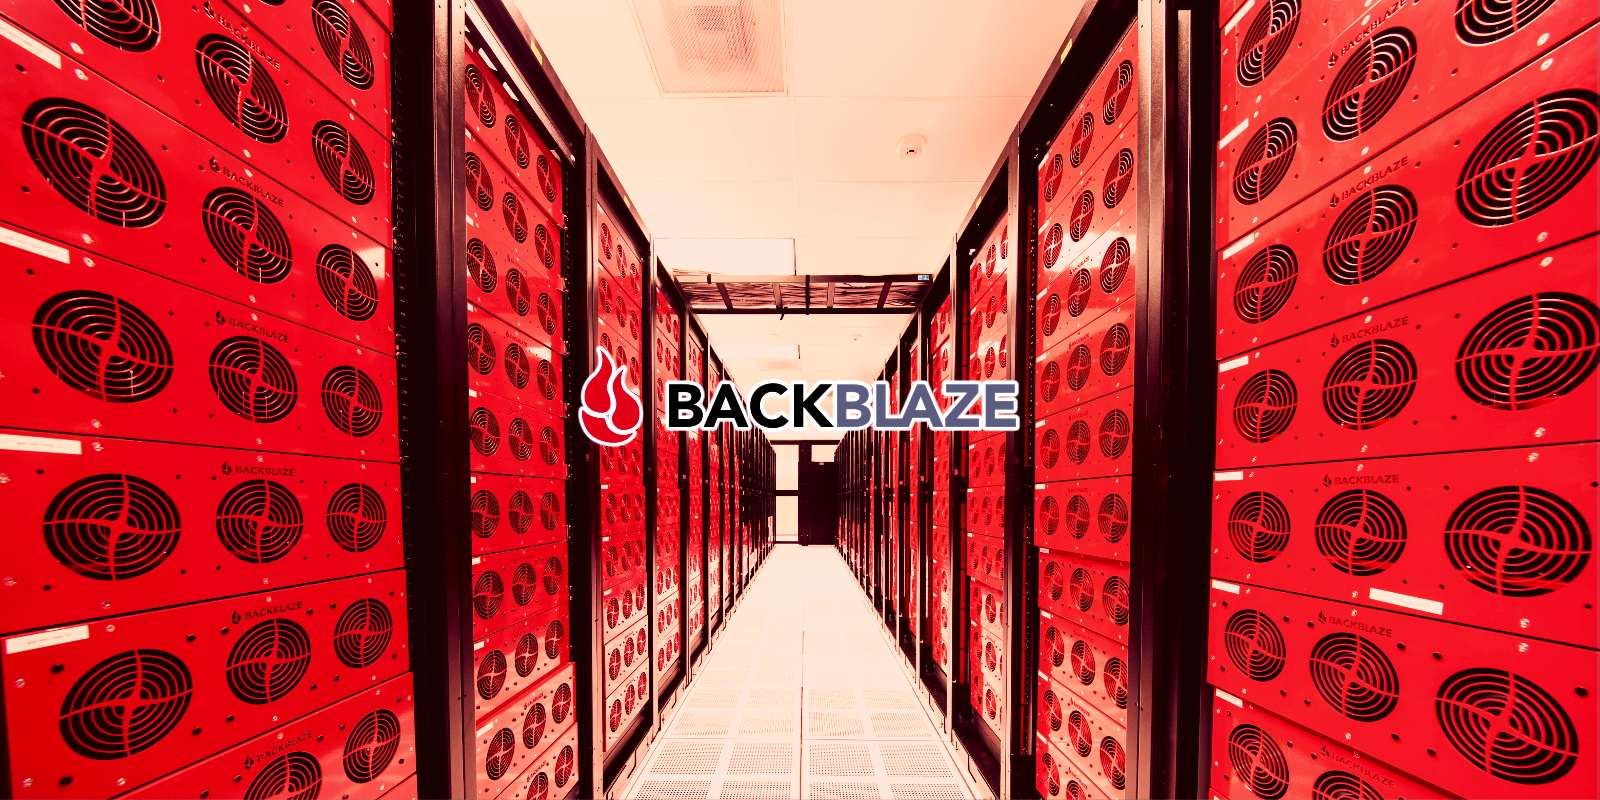 Backblaze cloud storage at a very low price